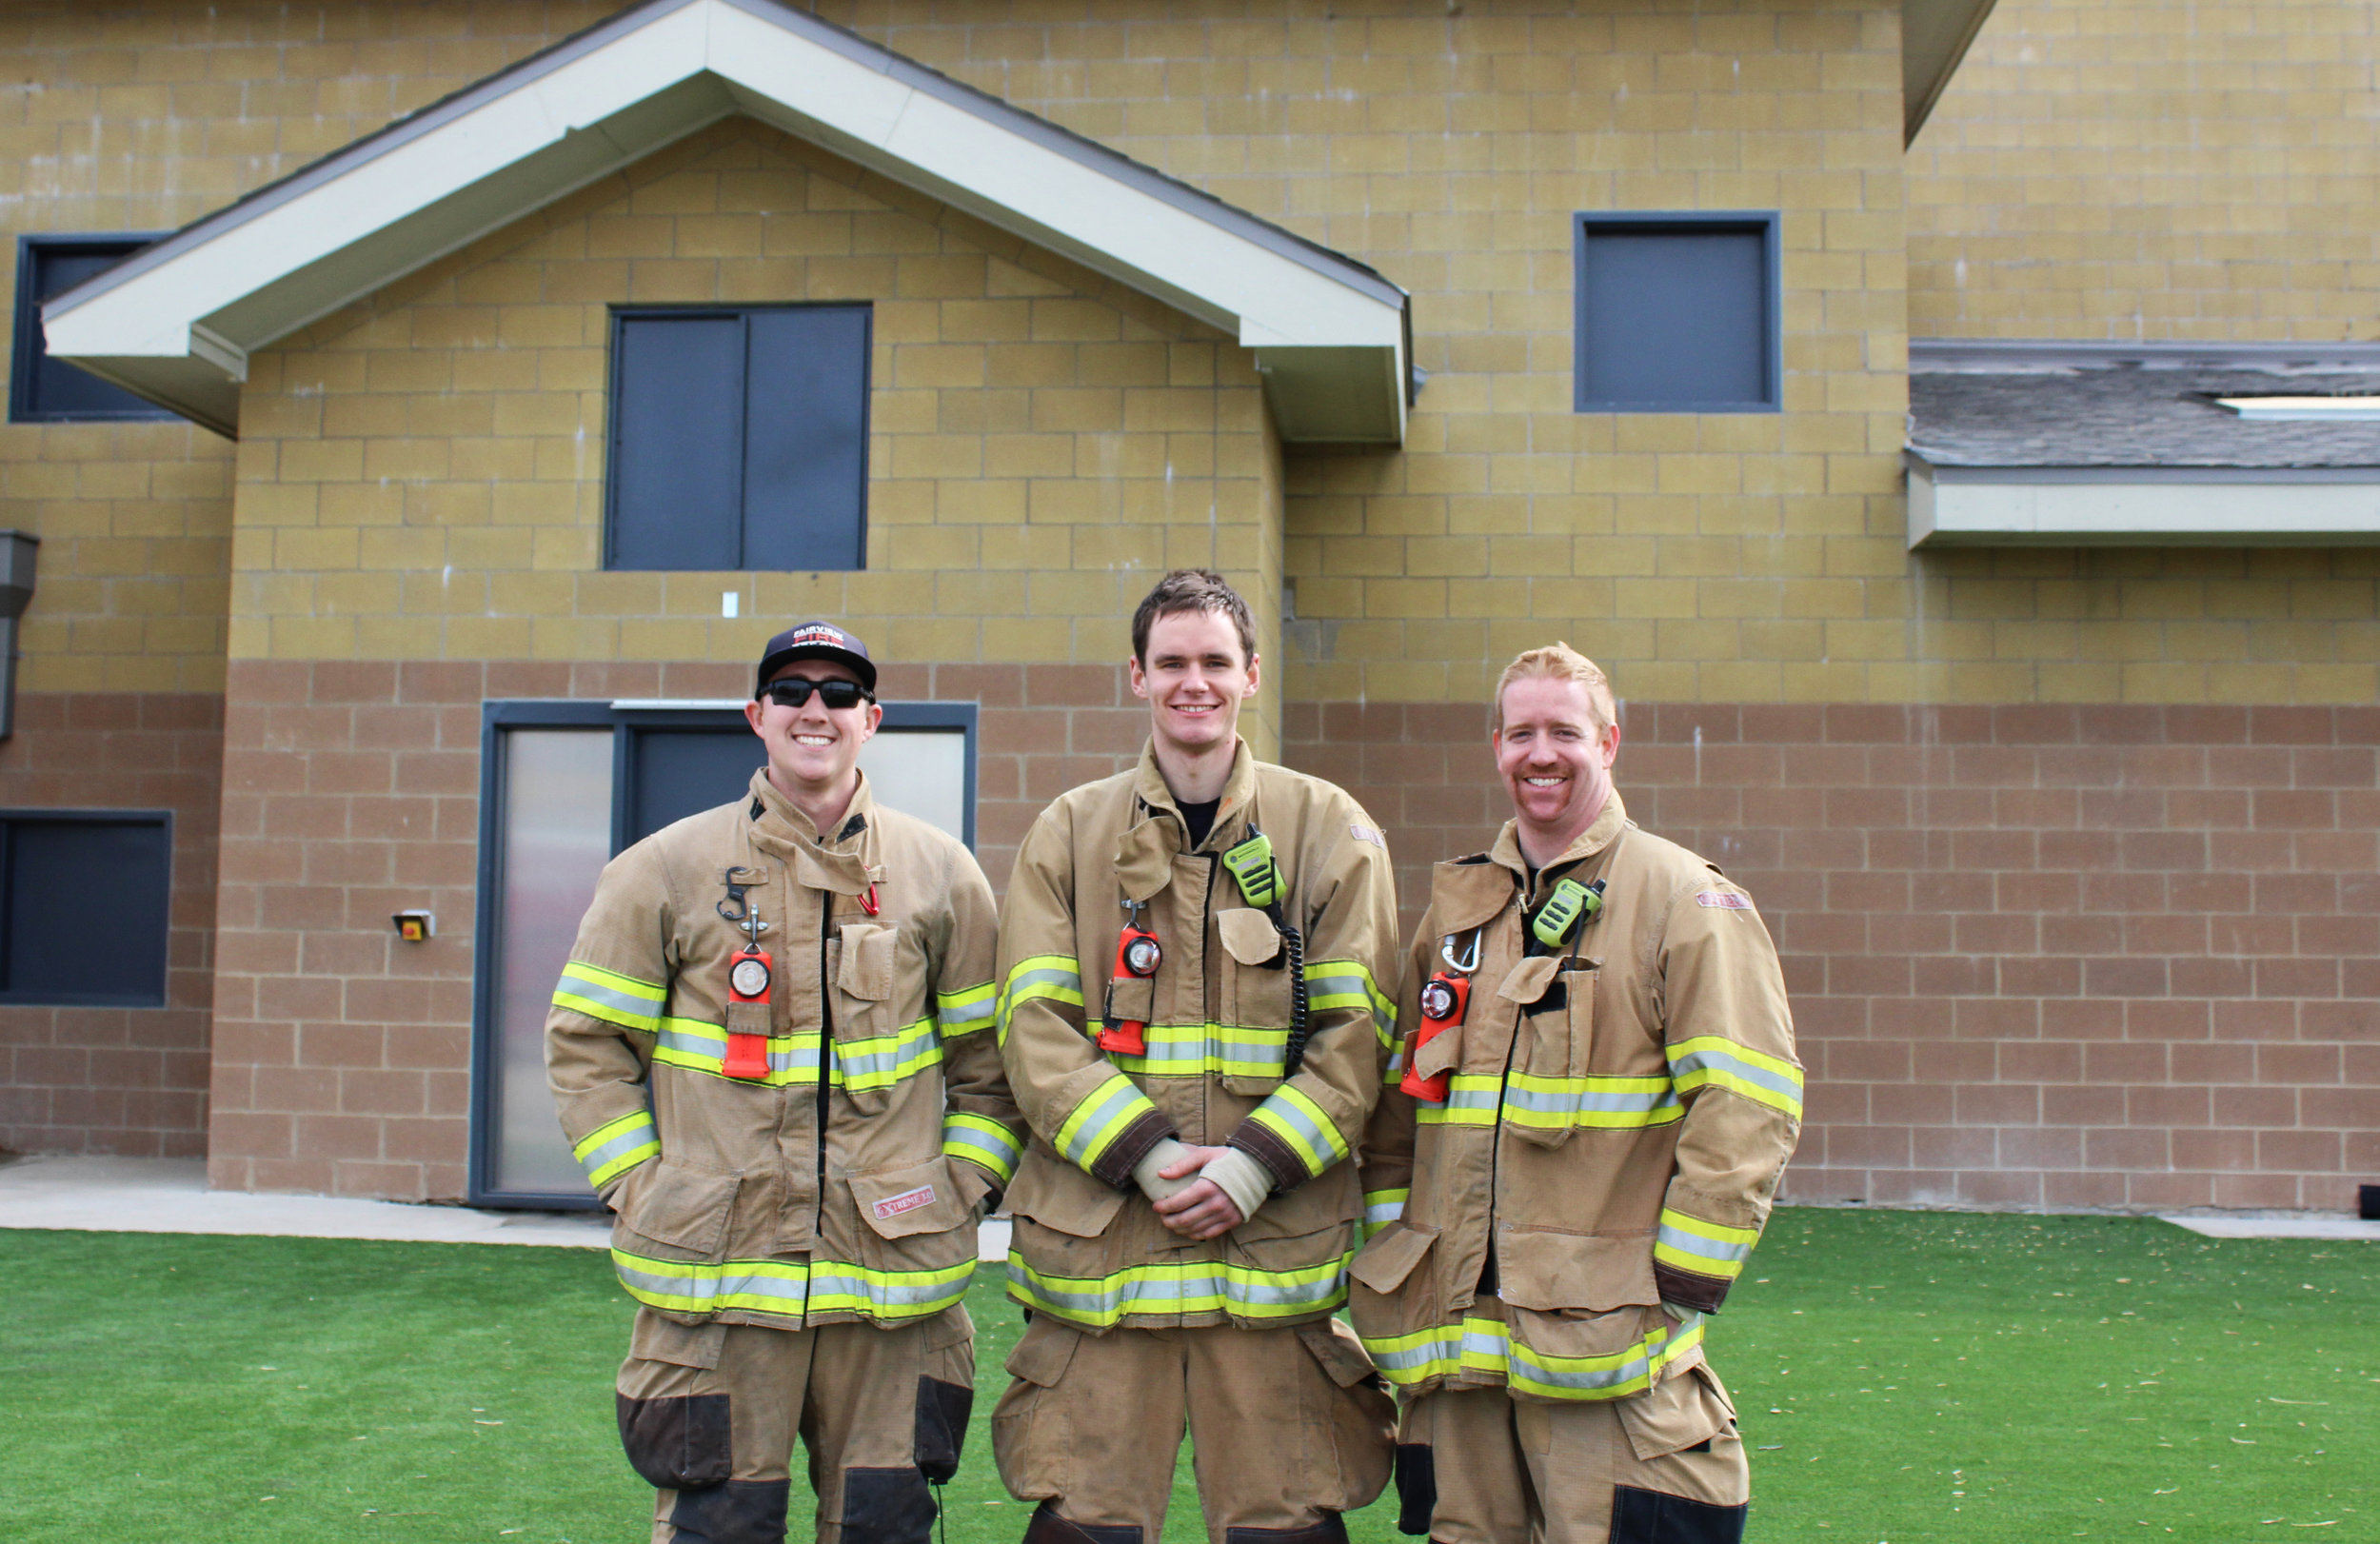 (From left) Step-up driver Austin Smotherman, Firefighter David Feig and Captain Nathan White. These three are assigned to Station One on A-shift.